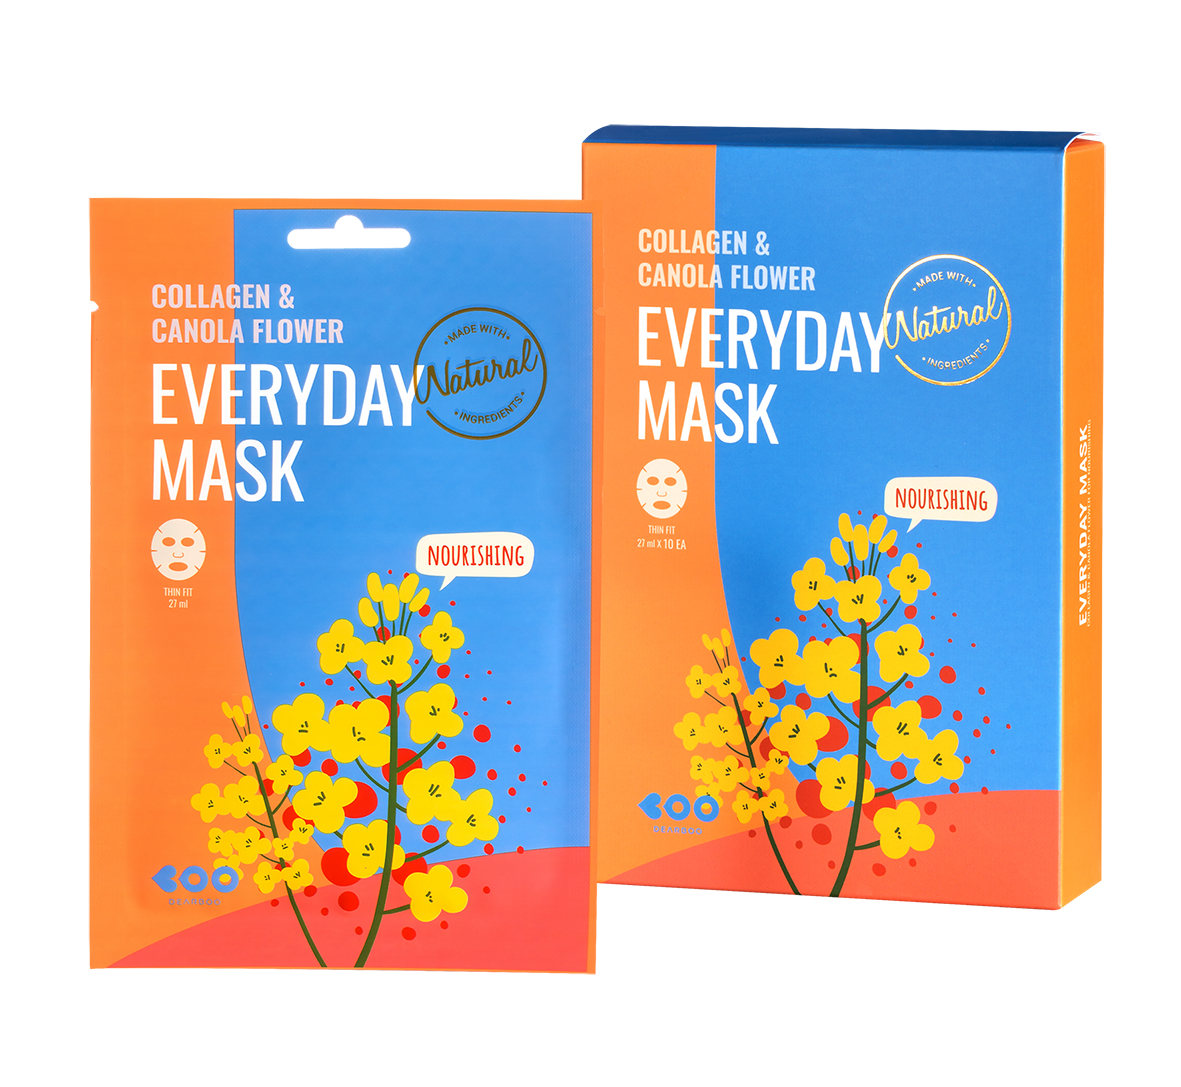 DEARBOO COLLAGEN & CANOLA FLOWER EVERYDAY MASK